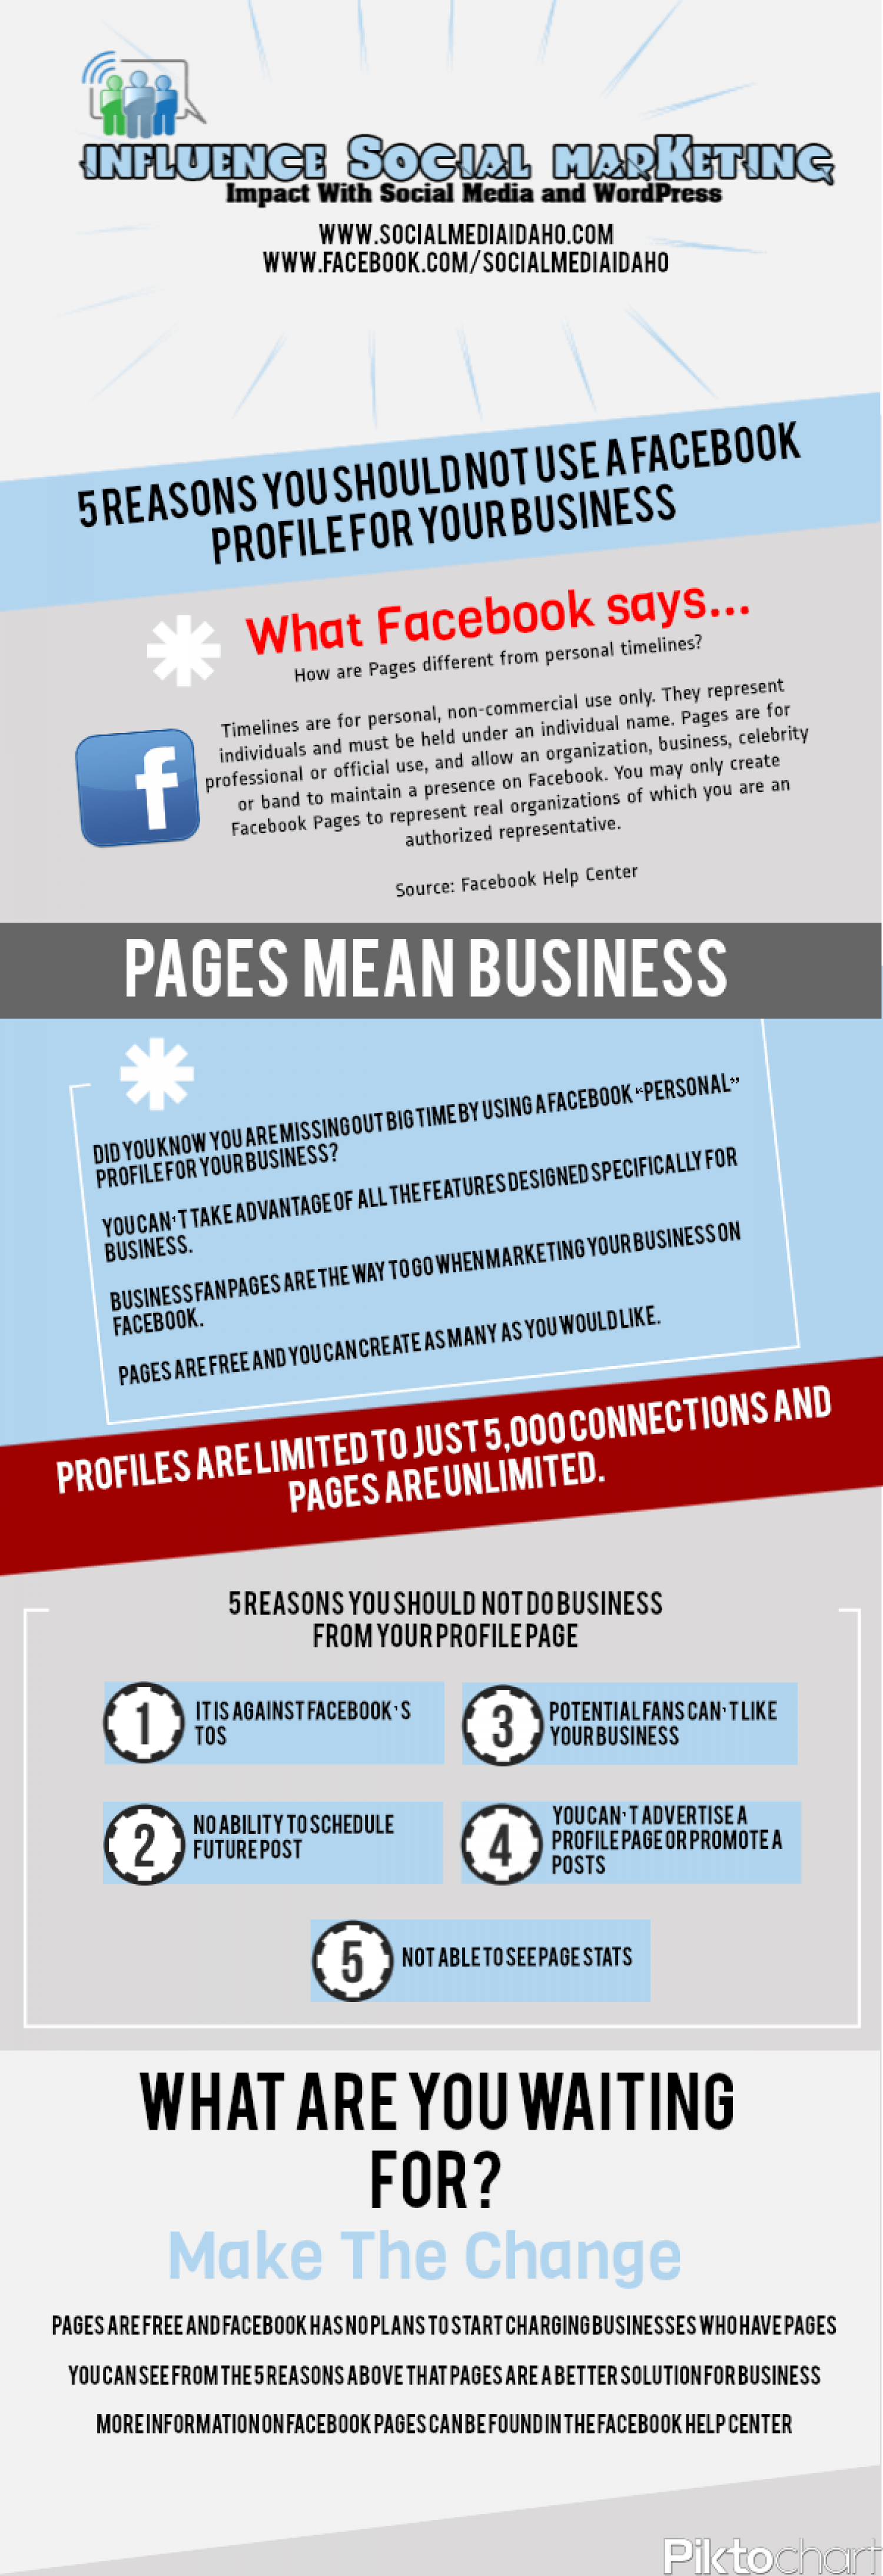 5 Reasons You Should Not Use A Facebook Profile For Your Business Infographic